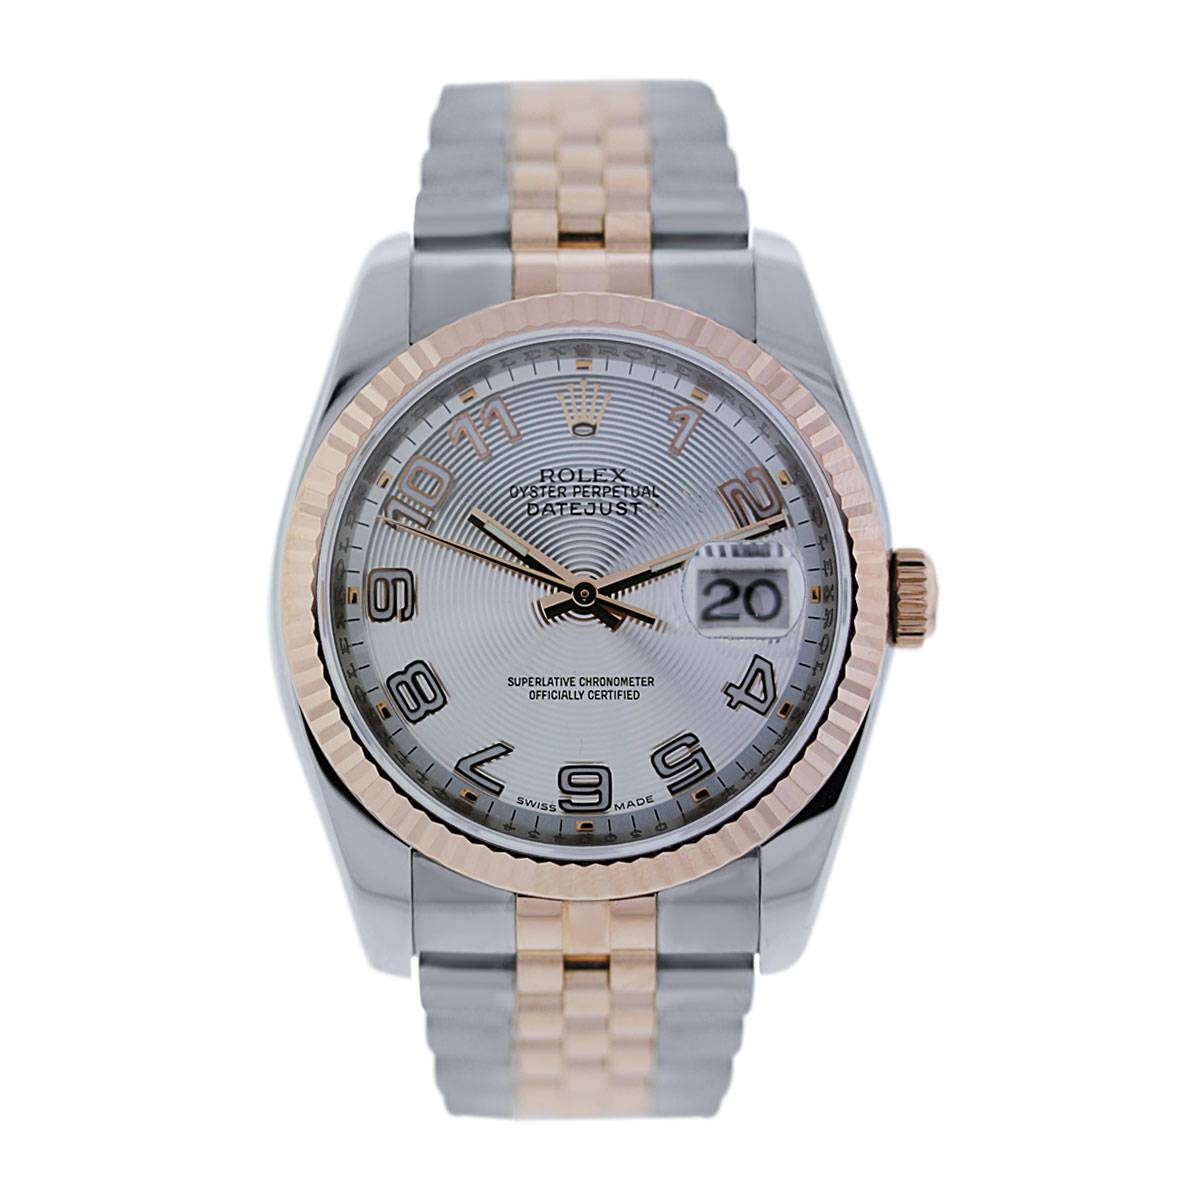 Rolex Datejust 116231 Concentric Dial Two Tone Rose Gold Watch